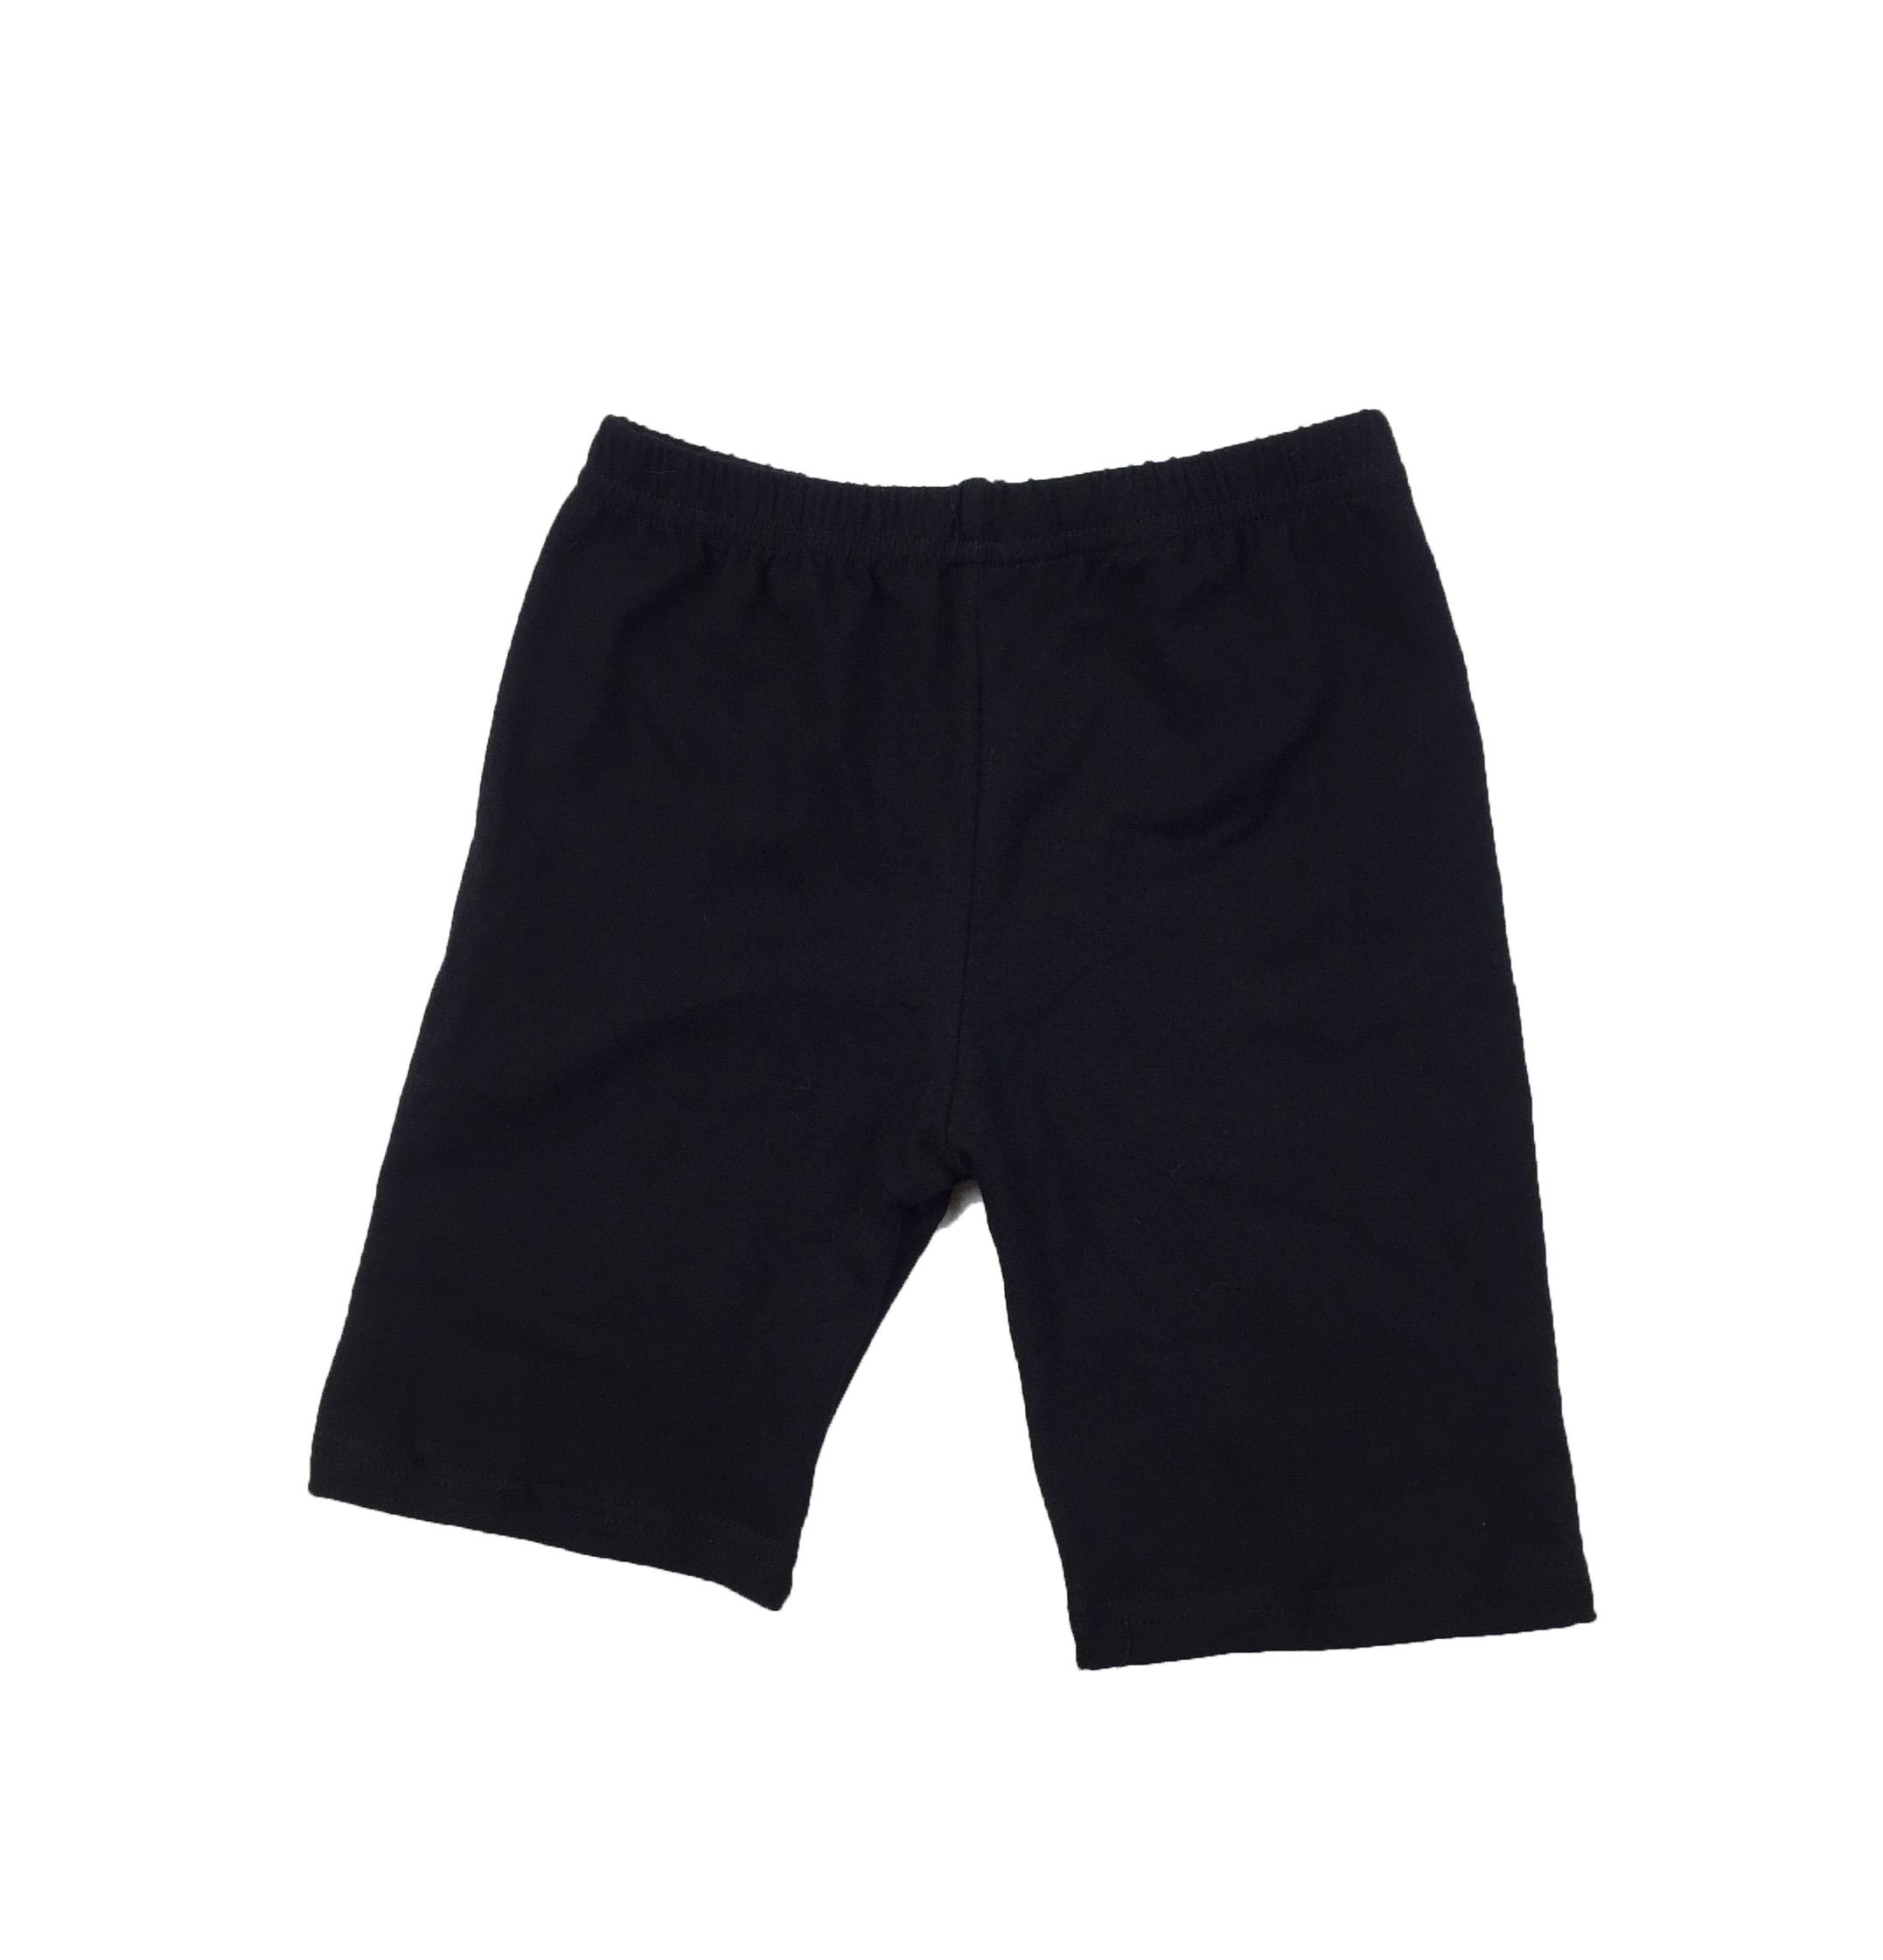 Personalized kids clothing wholesale solid color casual boy shorts kids biker shorts